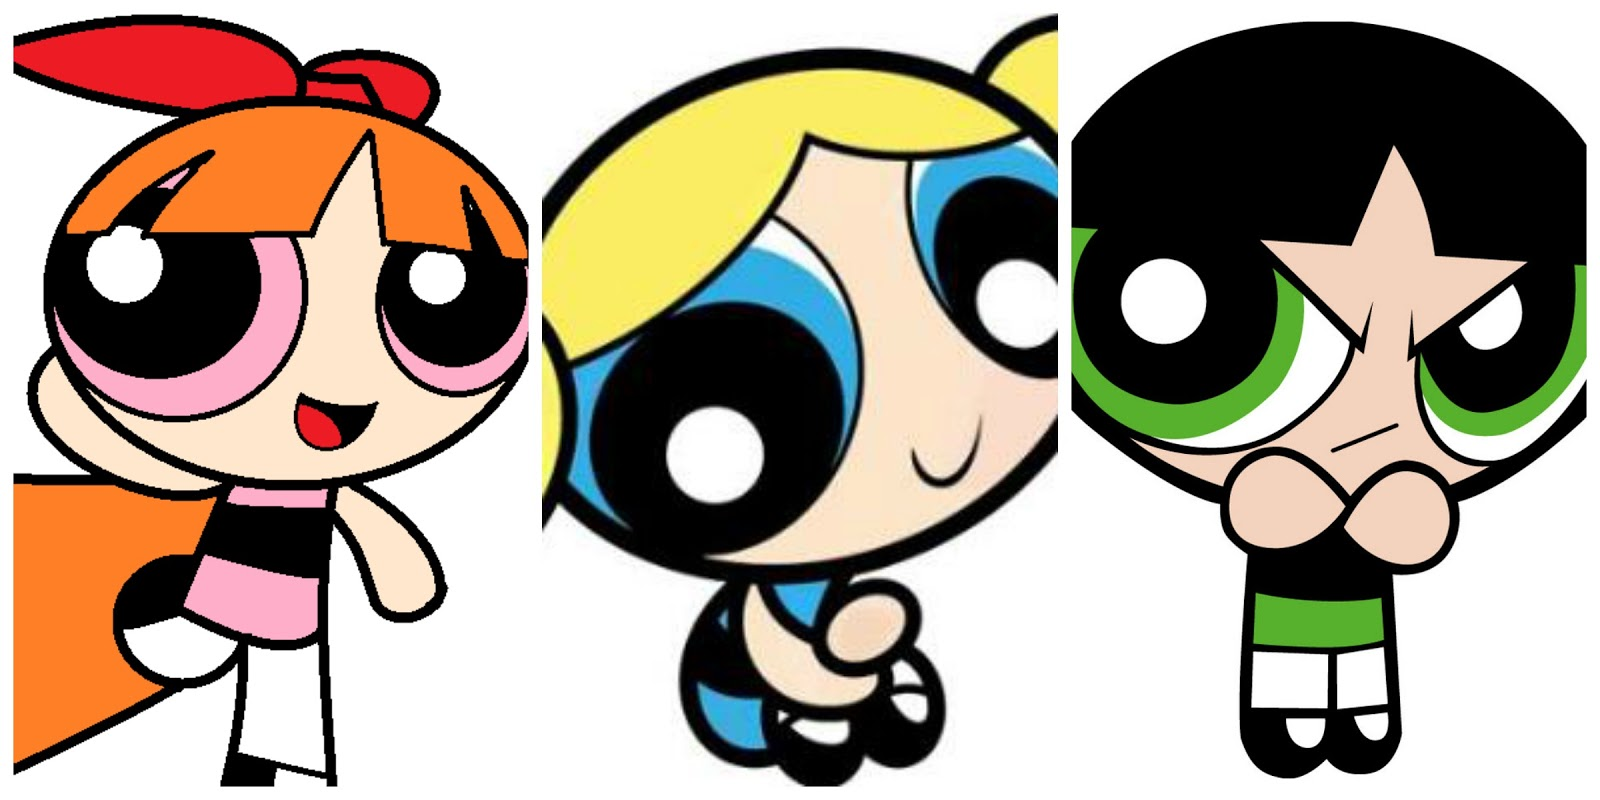 image gallery of powerpuff girls blossom and bubbles buttercup